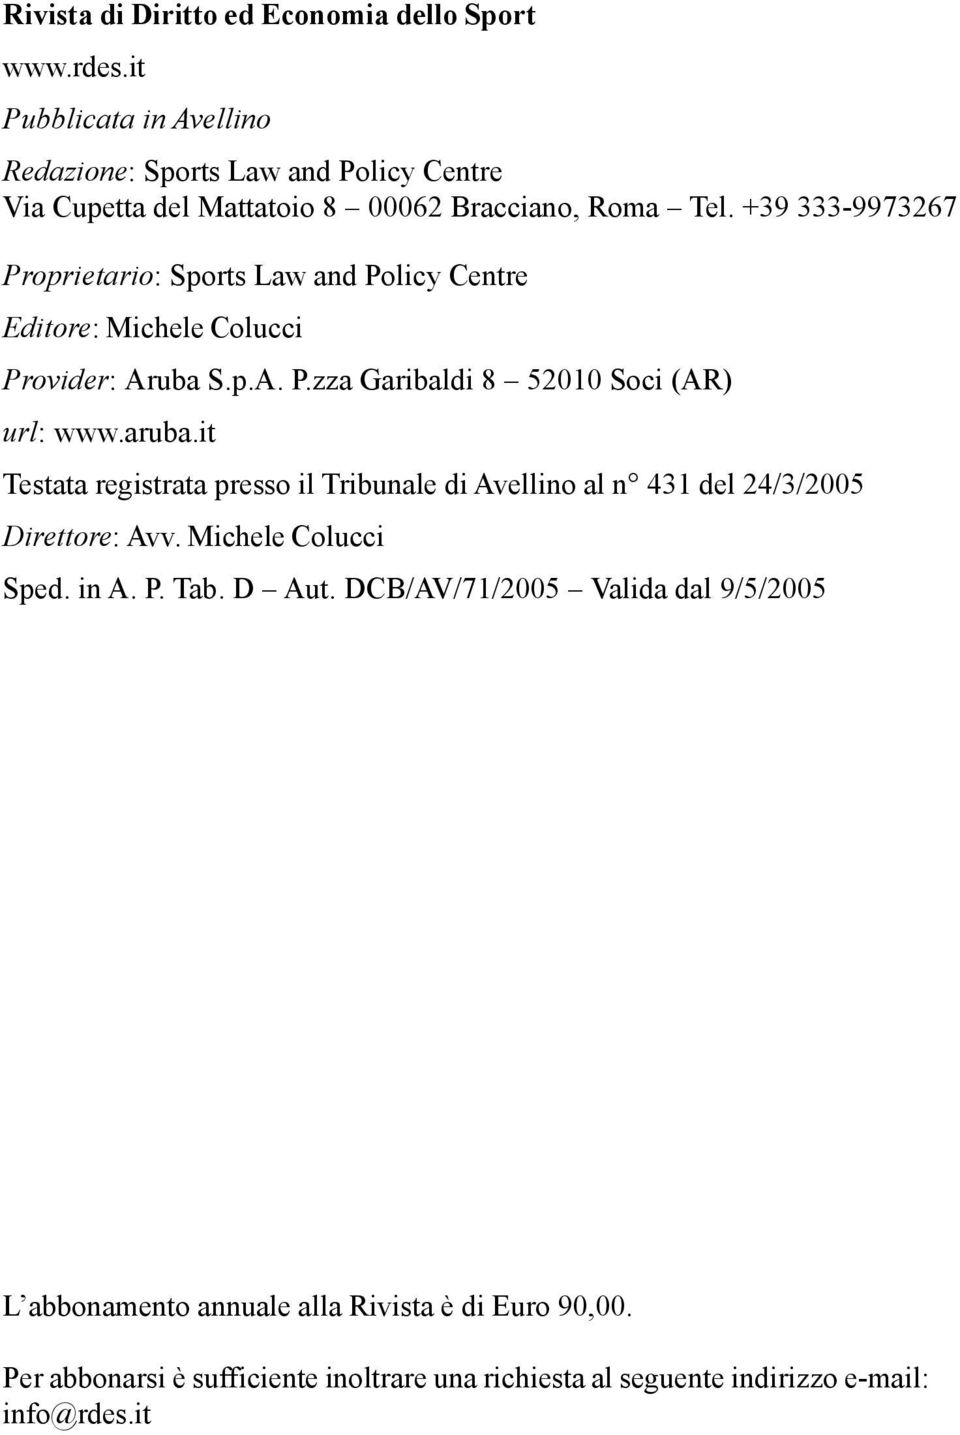 +39 333-9973267 Proprietario: Sports Law and Policy Centre Editore: Michele Colucci Provider: Aruba S.p.A. P.zza Garibaldi 8 52010 Soci (AR) url: www.aruba.